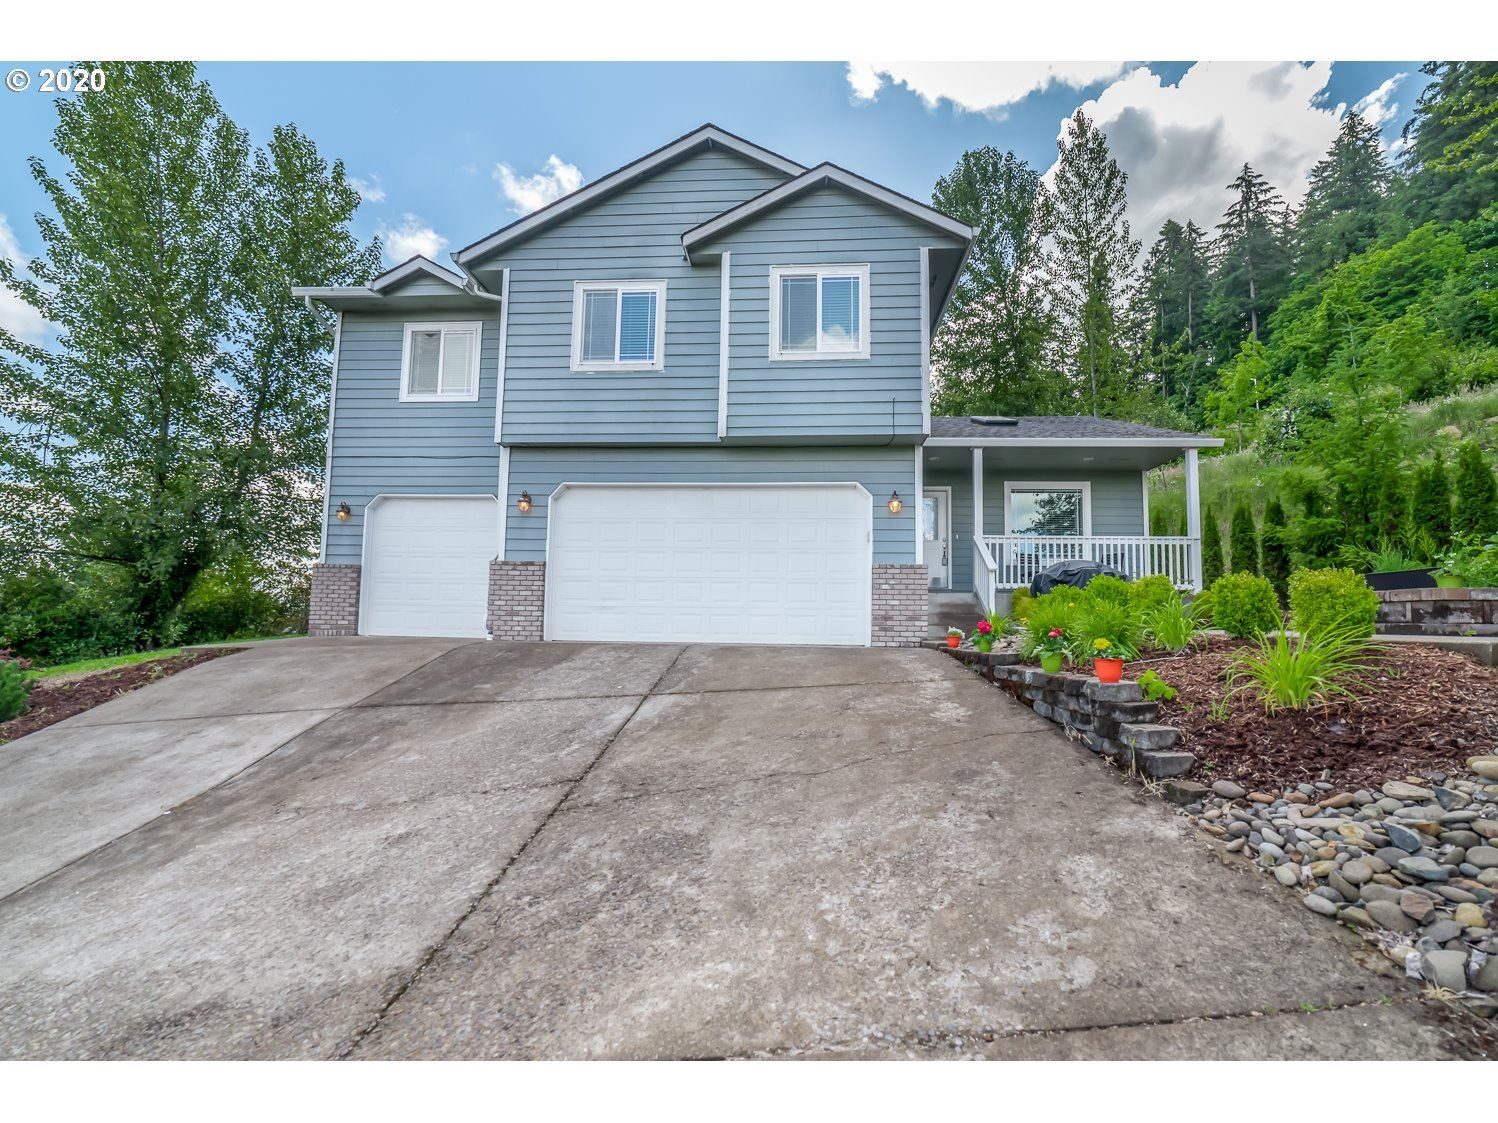 Photo for 775 QUEENS AVE, Creswell, OR 97426 (MLS # 20069076)